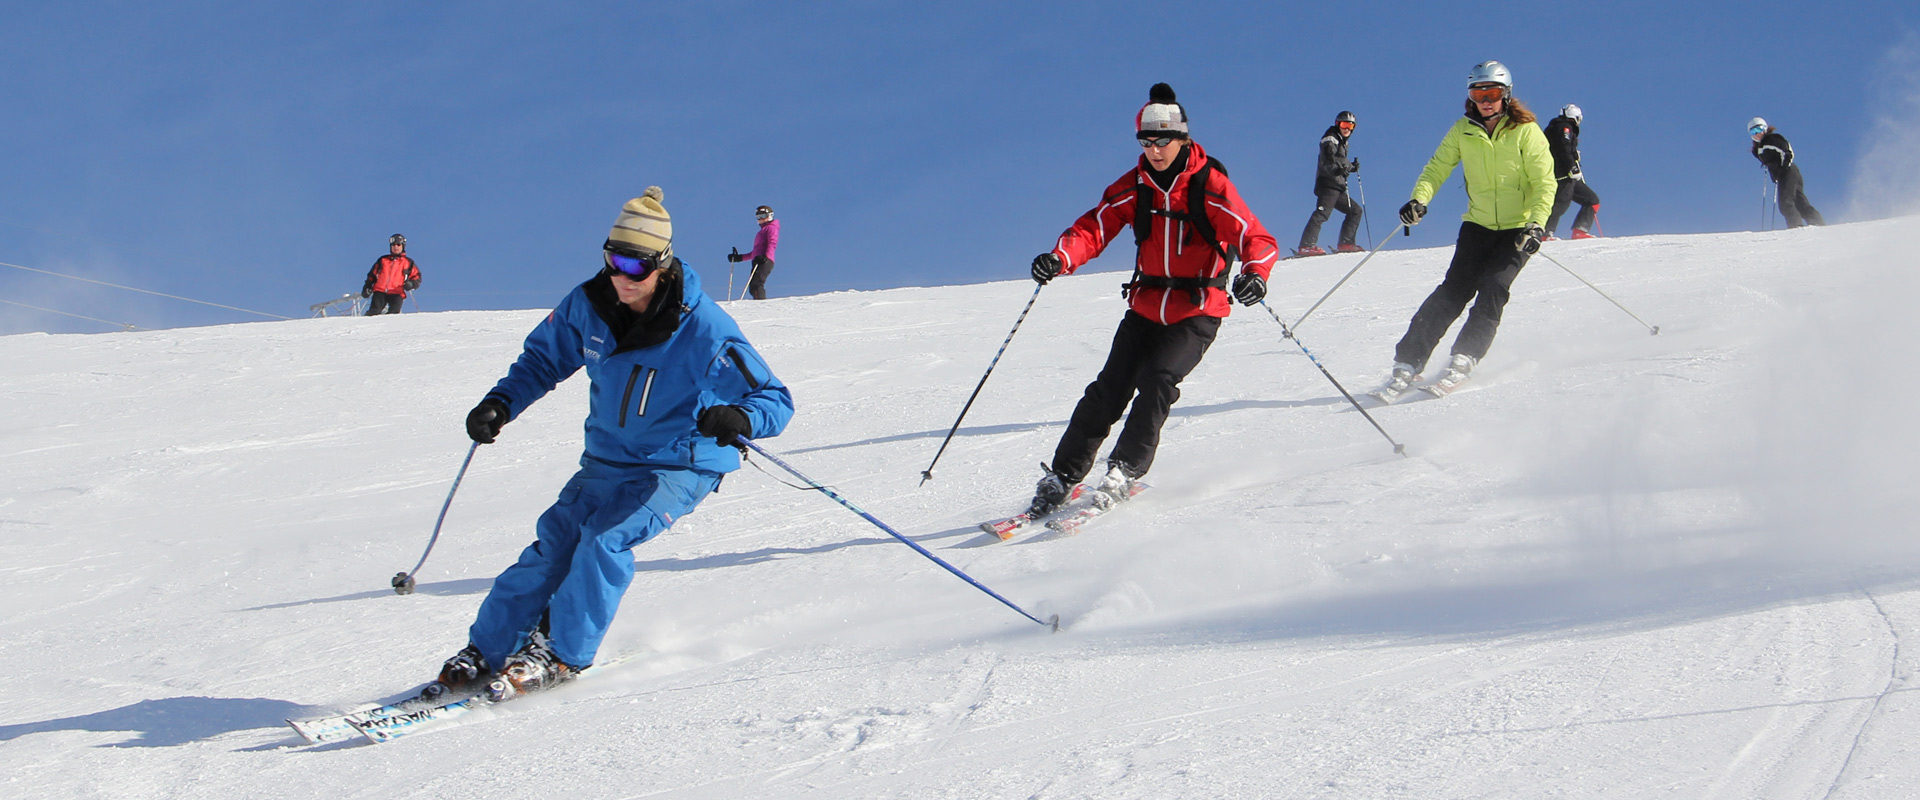 How To Get A Ski Instructor Job Altitude Ski And Snowboard School In Verbier